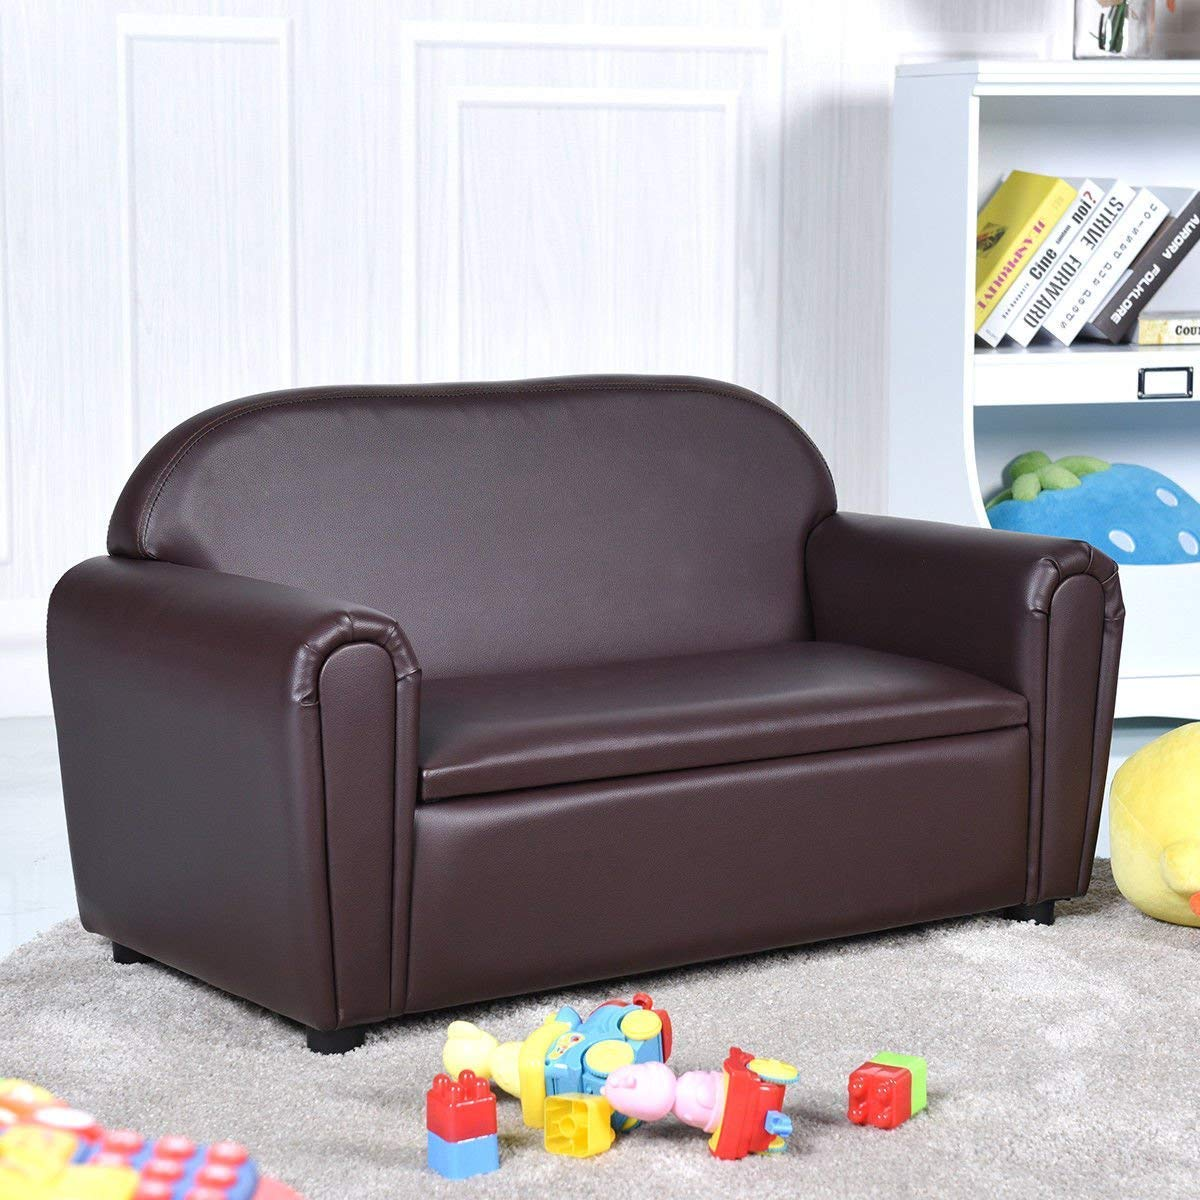 Costzon Kids Sofa, Upholstered Couch, Sturdy Wood Construction, Armrest Chair for Preschool Children, Couch with Storage Box